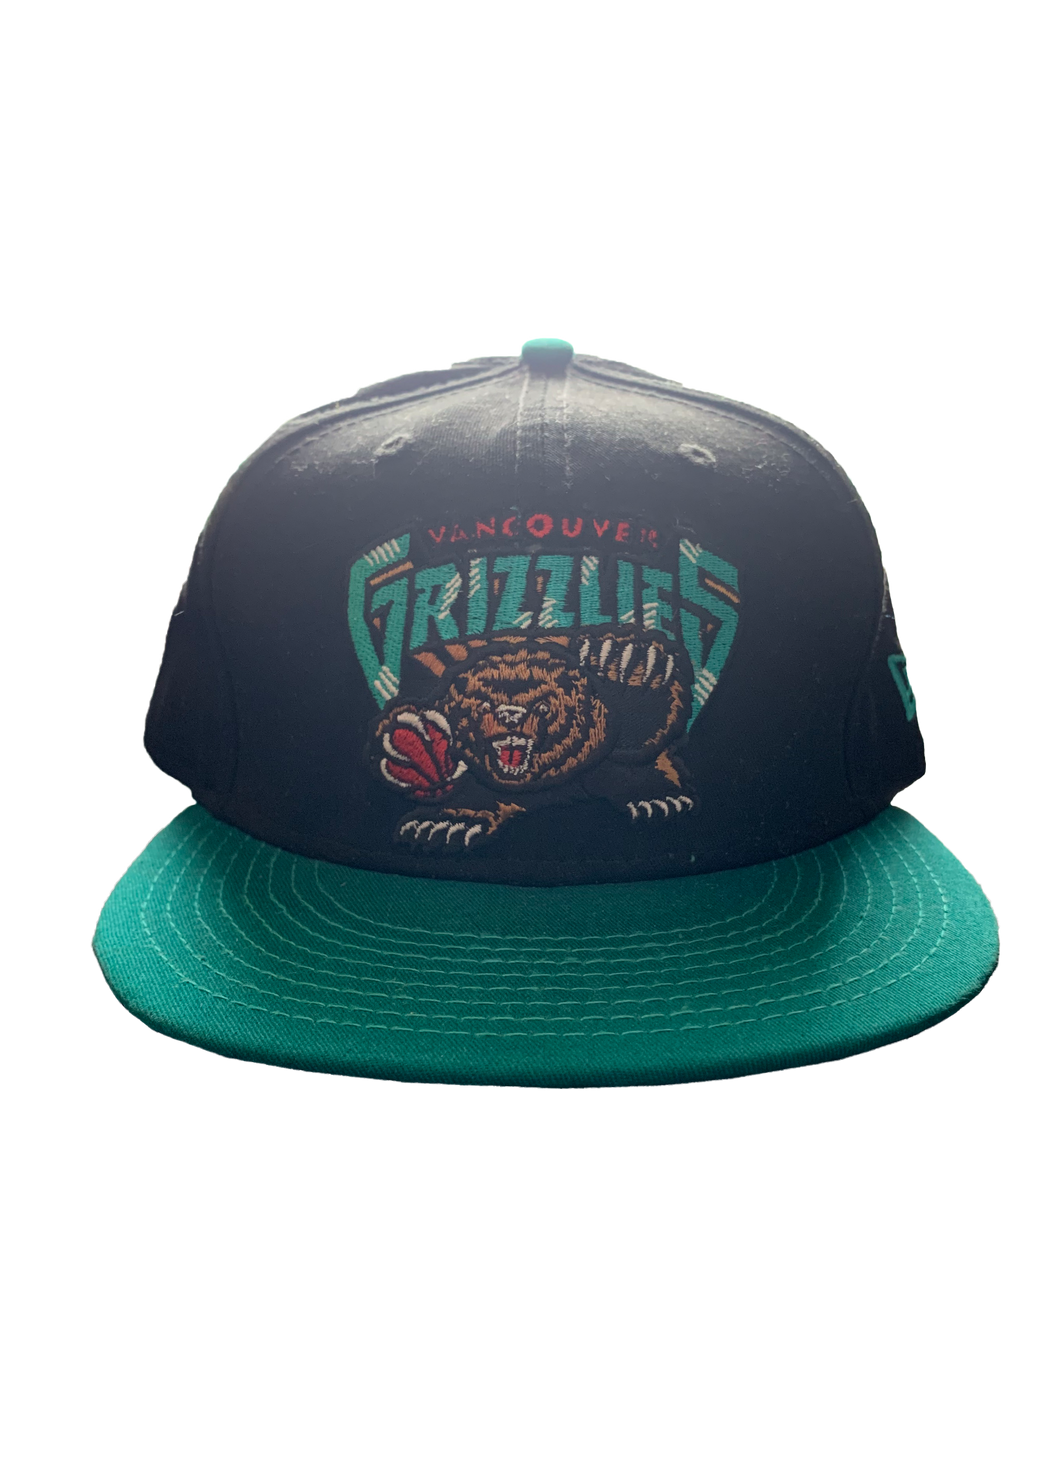 Vintage Vancouver Grizzlies Hardwood Classic Nights Snapback